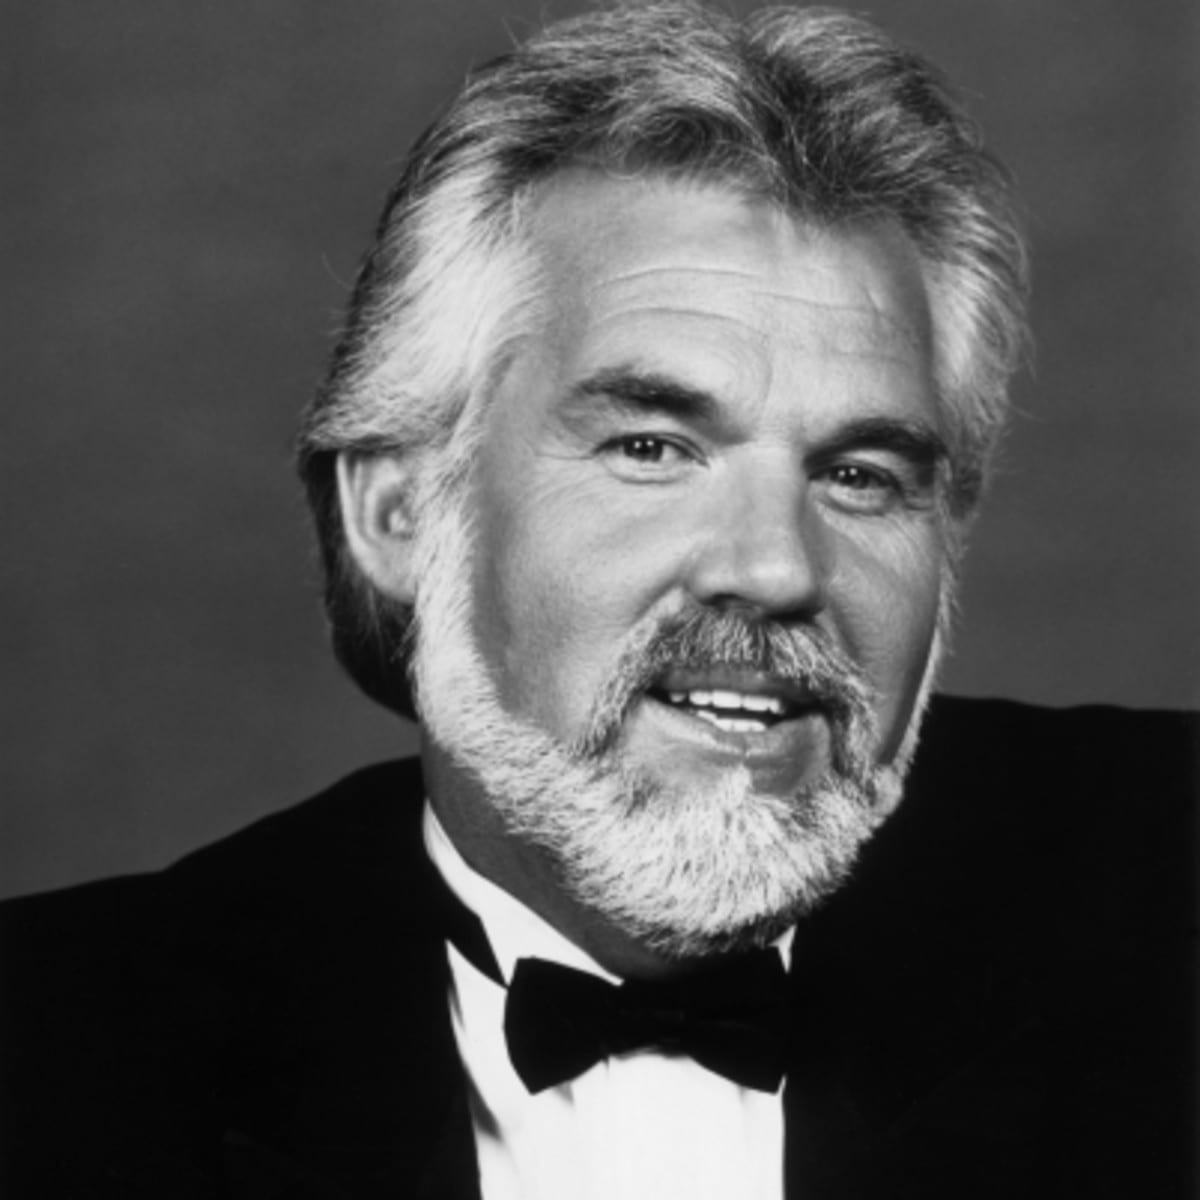 kenny rogers birthday 81 islands in the stream the gambler